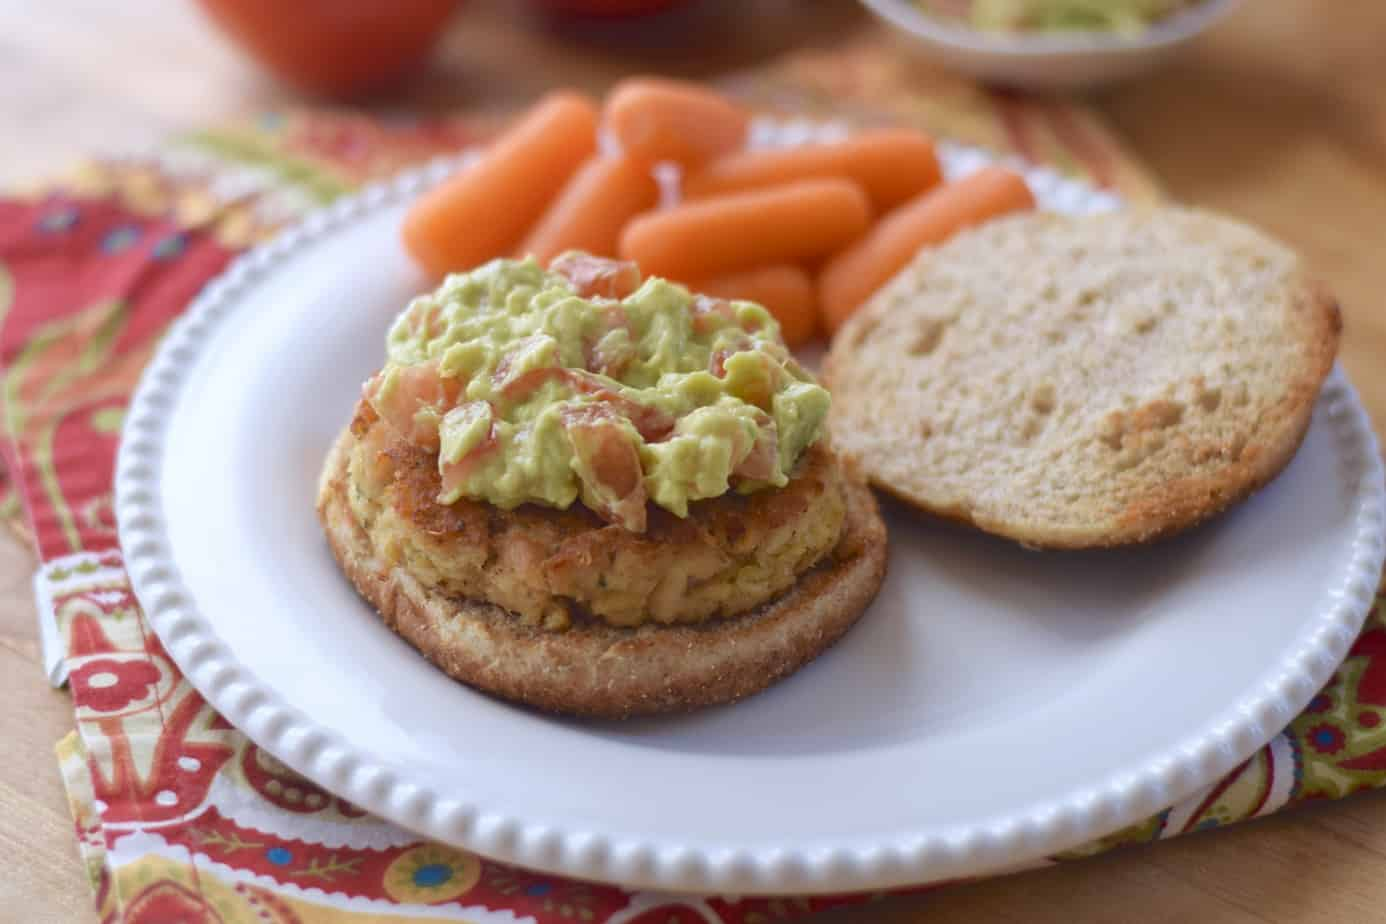 tuna burger topped with smashed avocado and tomato on a whole grain bun on plate with baby carrots